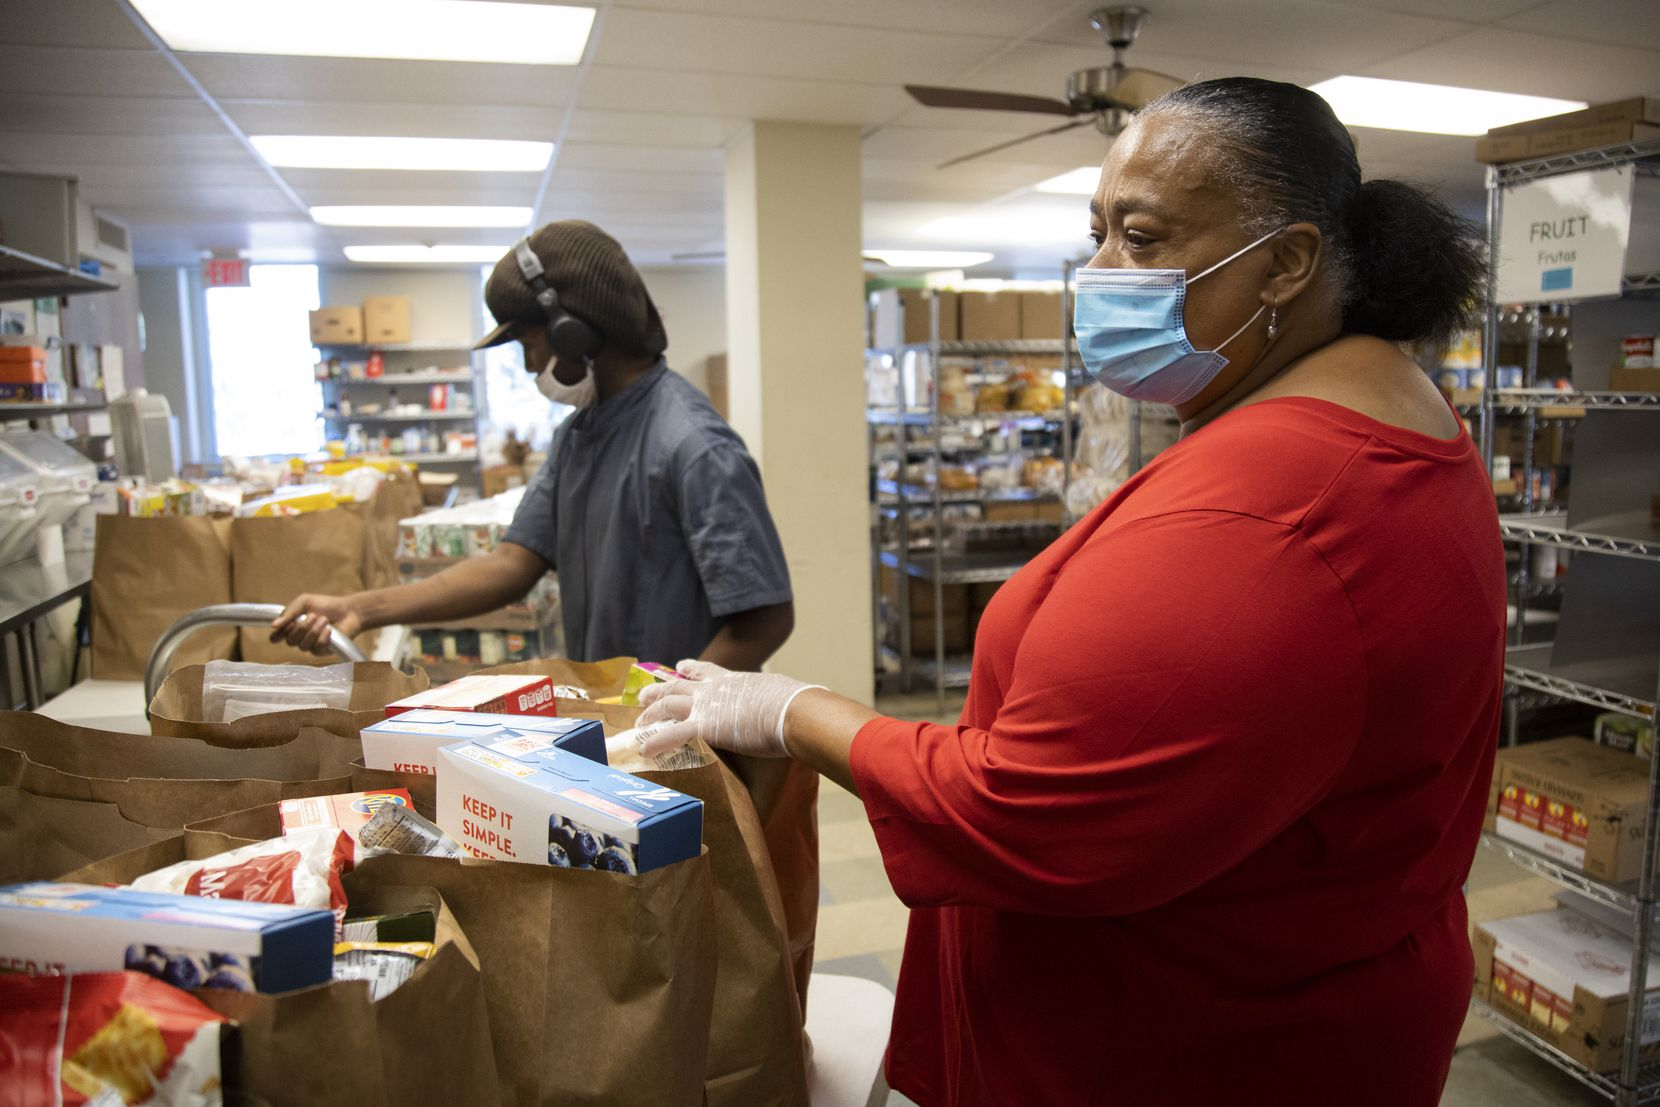 Dawn Shepard, Rangers fan and Broadway Baptist Church's community center director, looks over bags of food ready for distribution from the food pantry at the Fort Worth church.